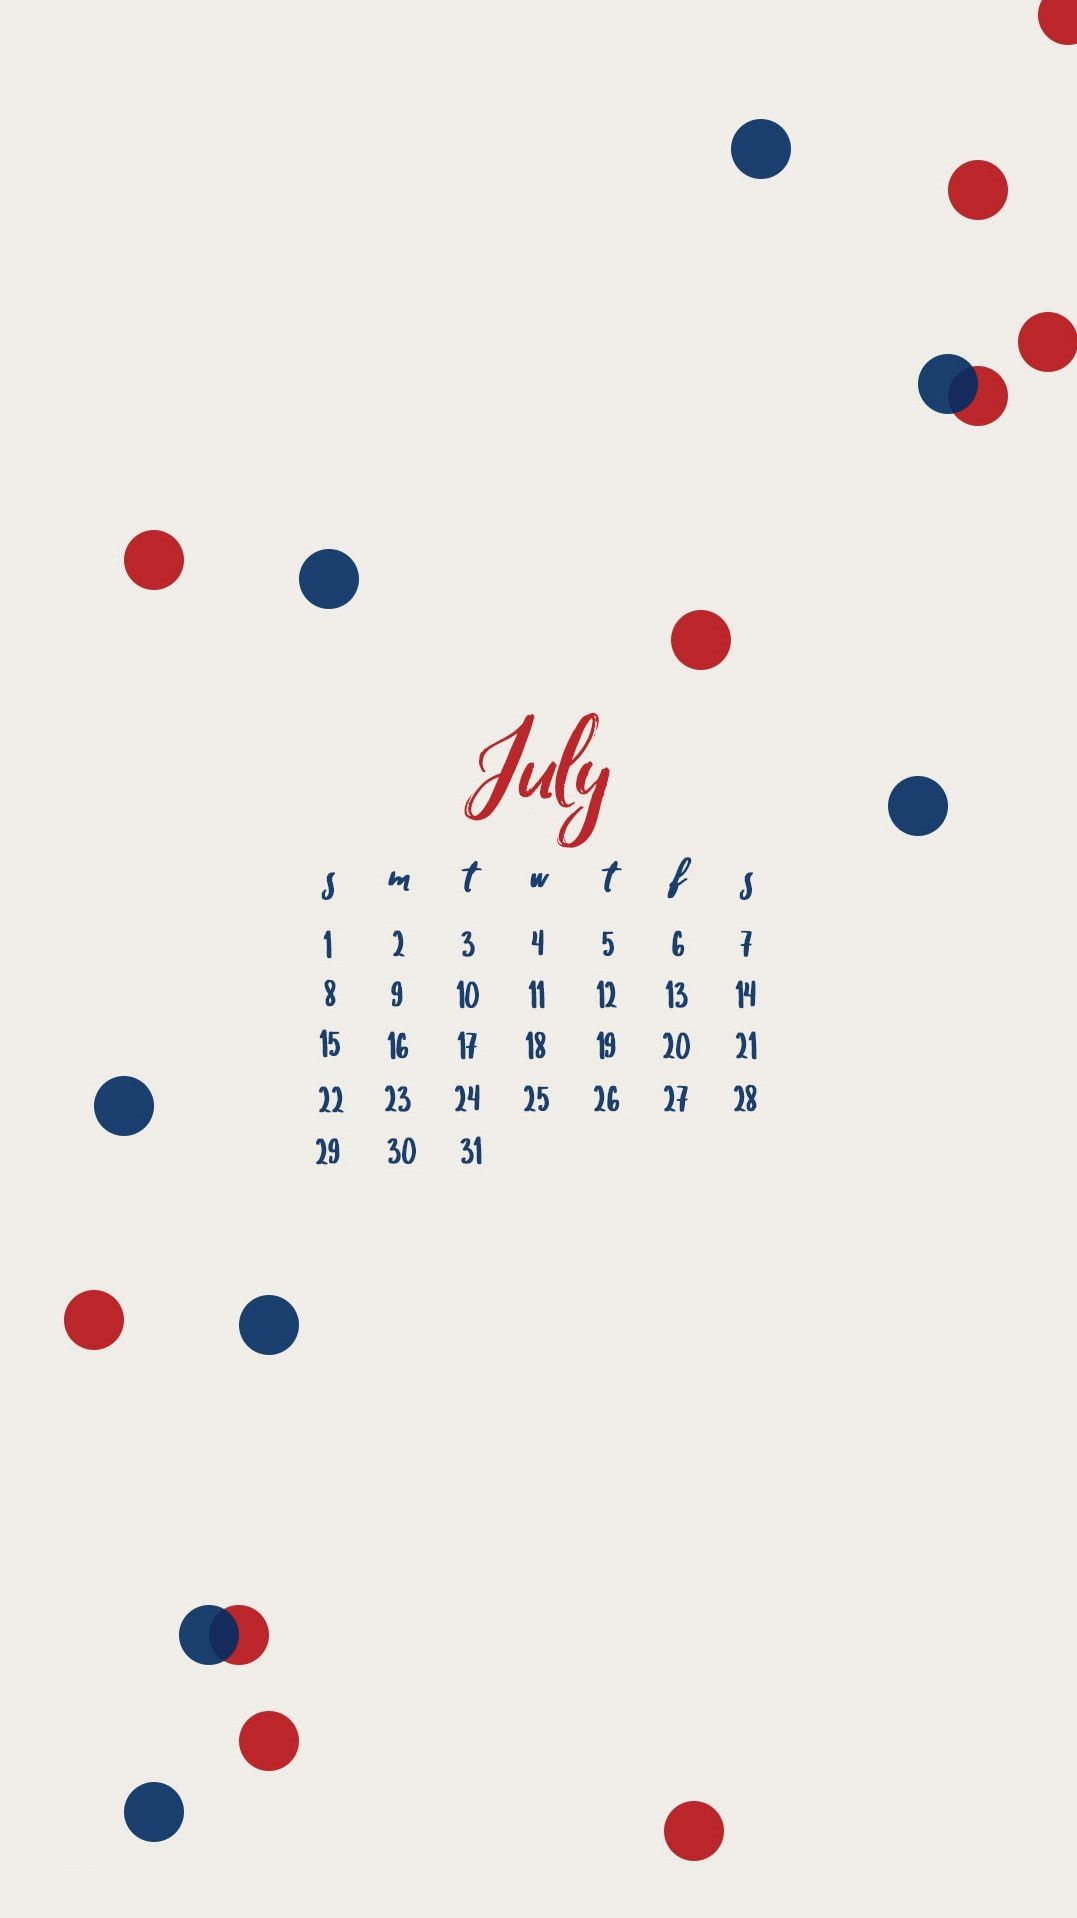 July 2018 iPhone Calendar Design Calendar 2018 in 2019 1077x1918